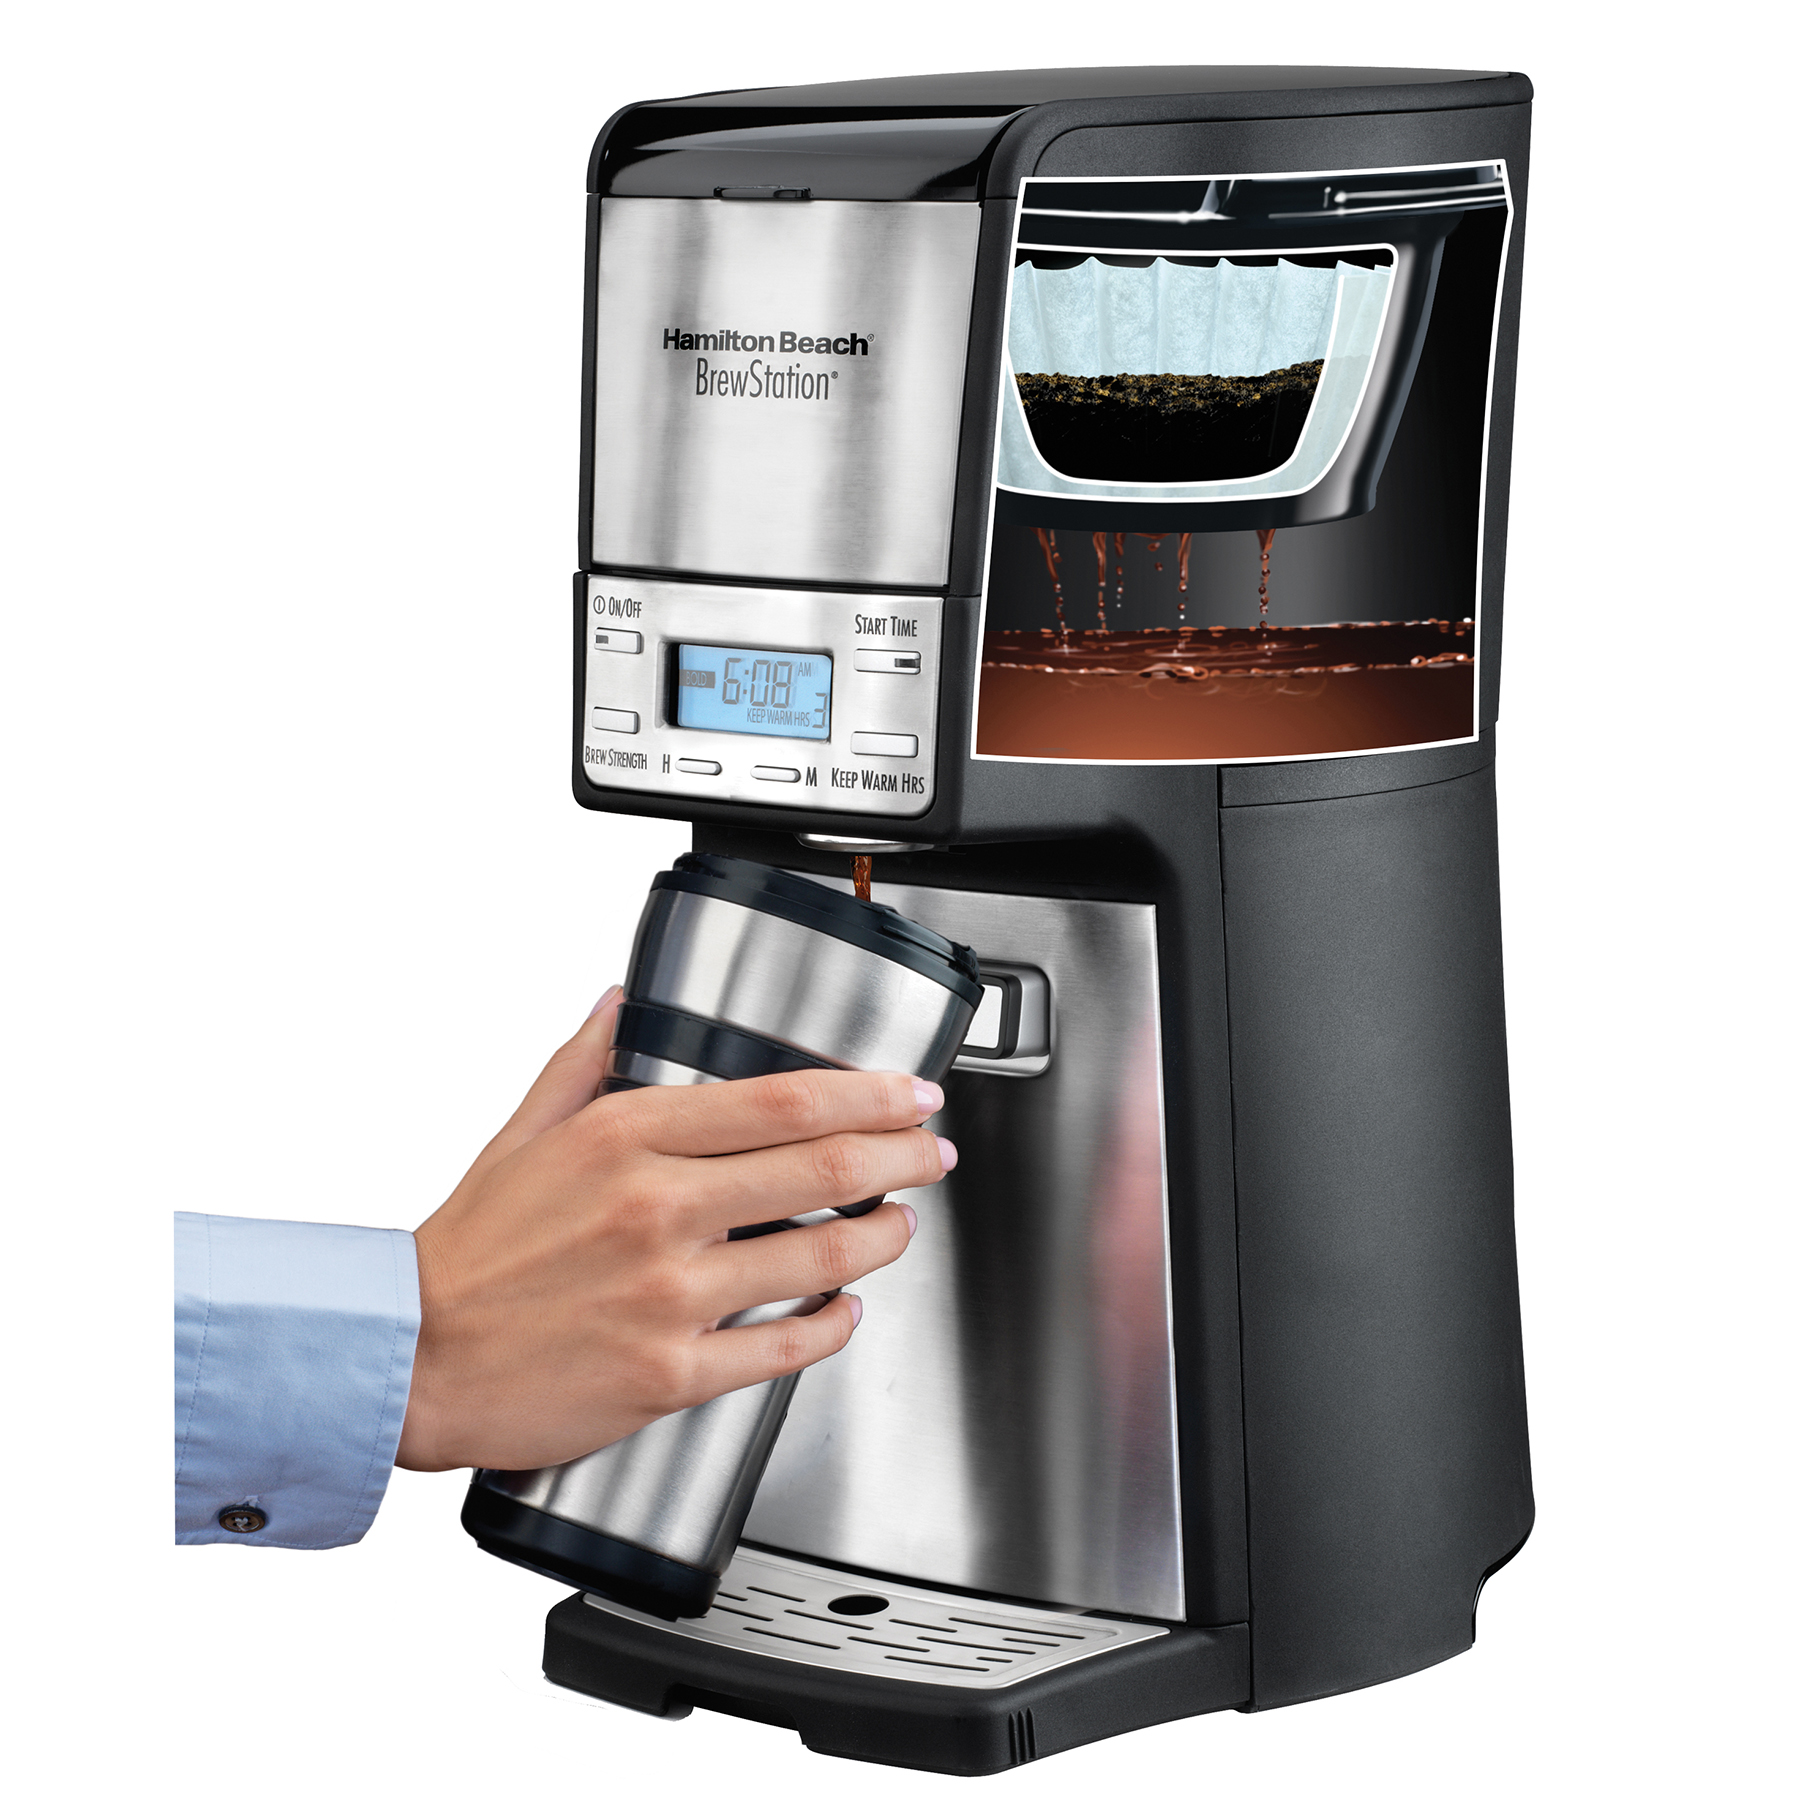 One Cup Coffee Maker Programmable : Hamilton Beach 48465 Brewstation Summit Ultra 12-Cup Programmable Coffeemaker